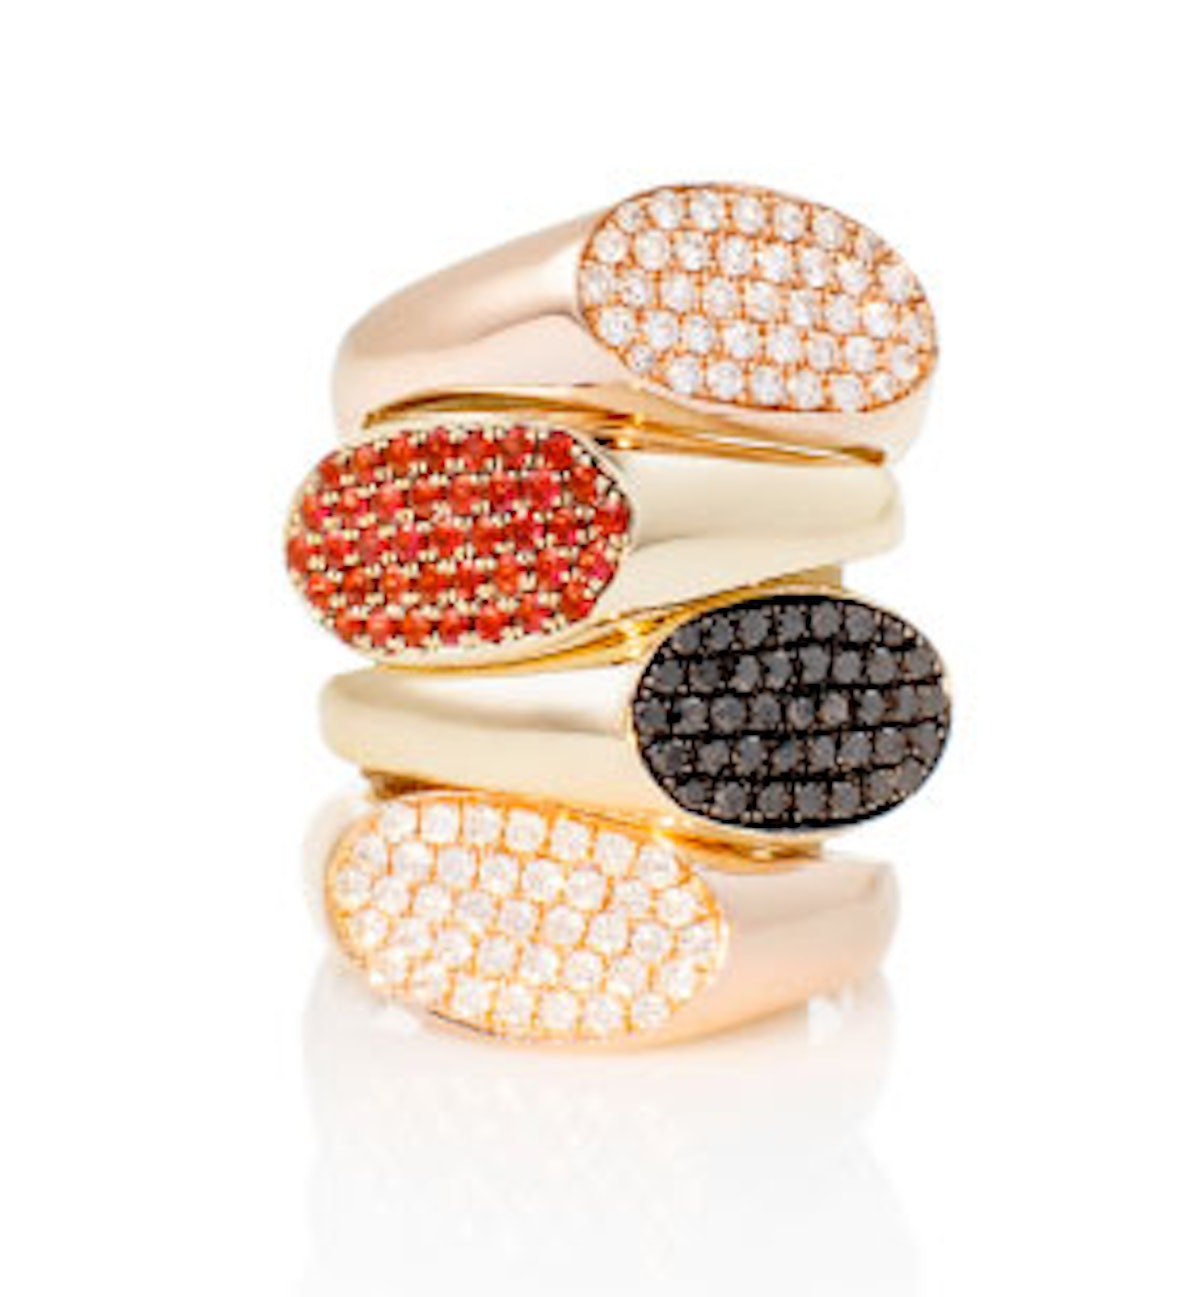 Our idea of a Super Bowl ring. *Garland Rings, $1900 each, [garlandcollection.com](http://garlandcollection.com).*